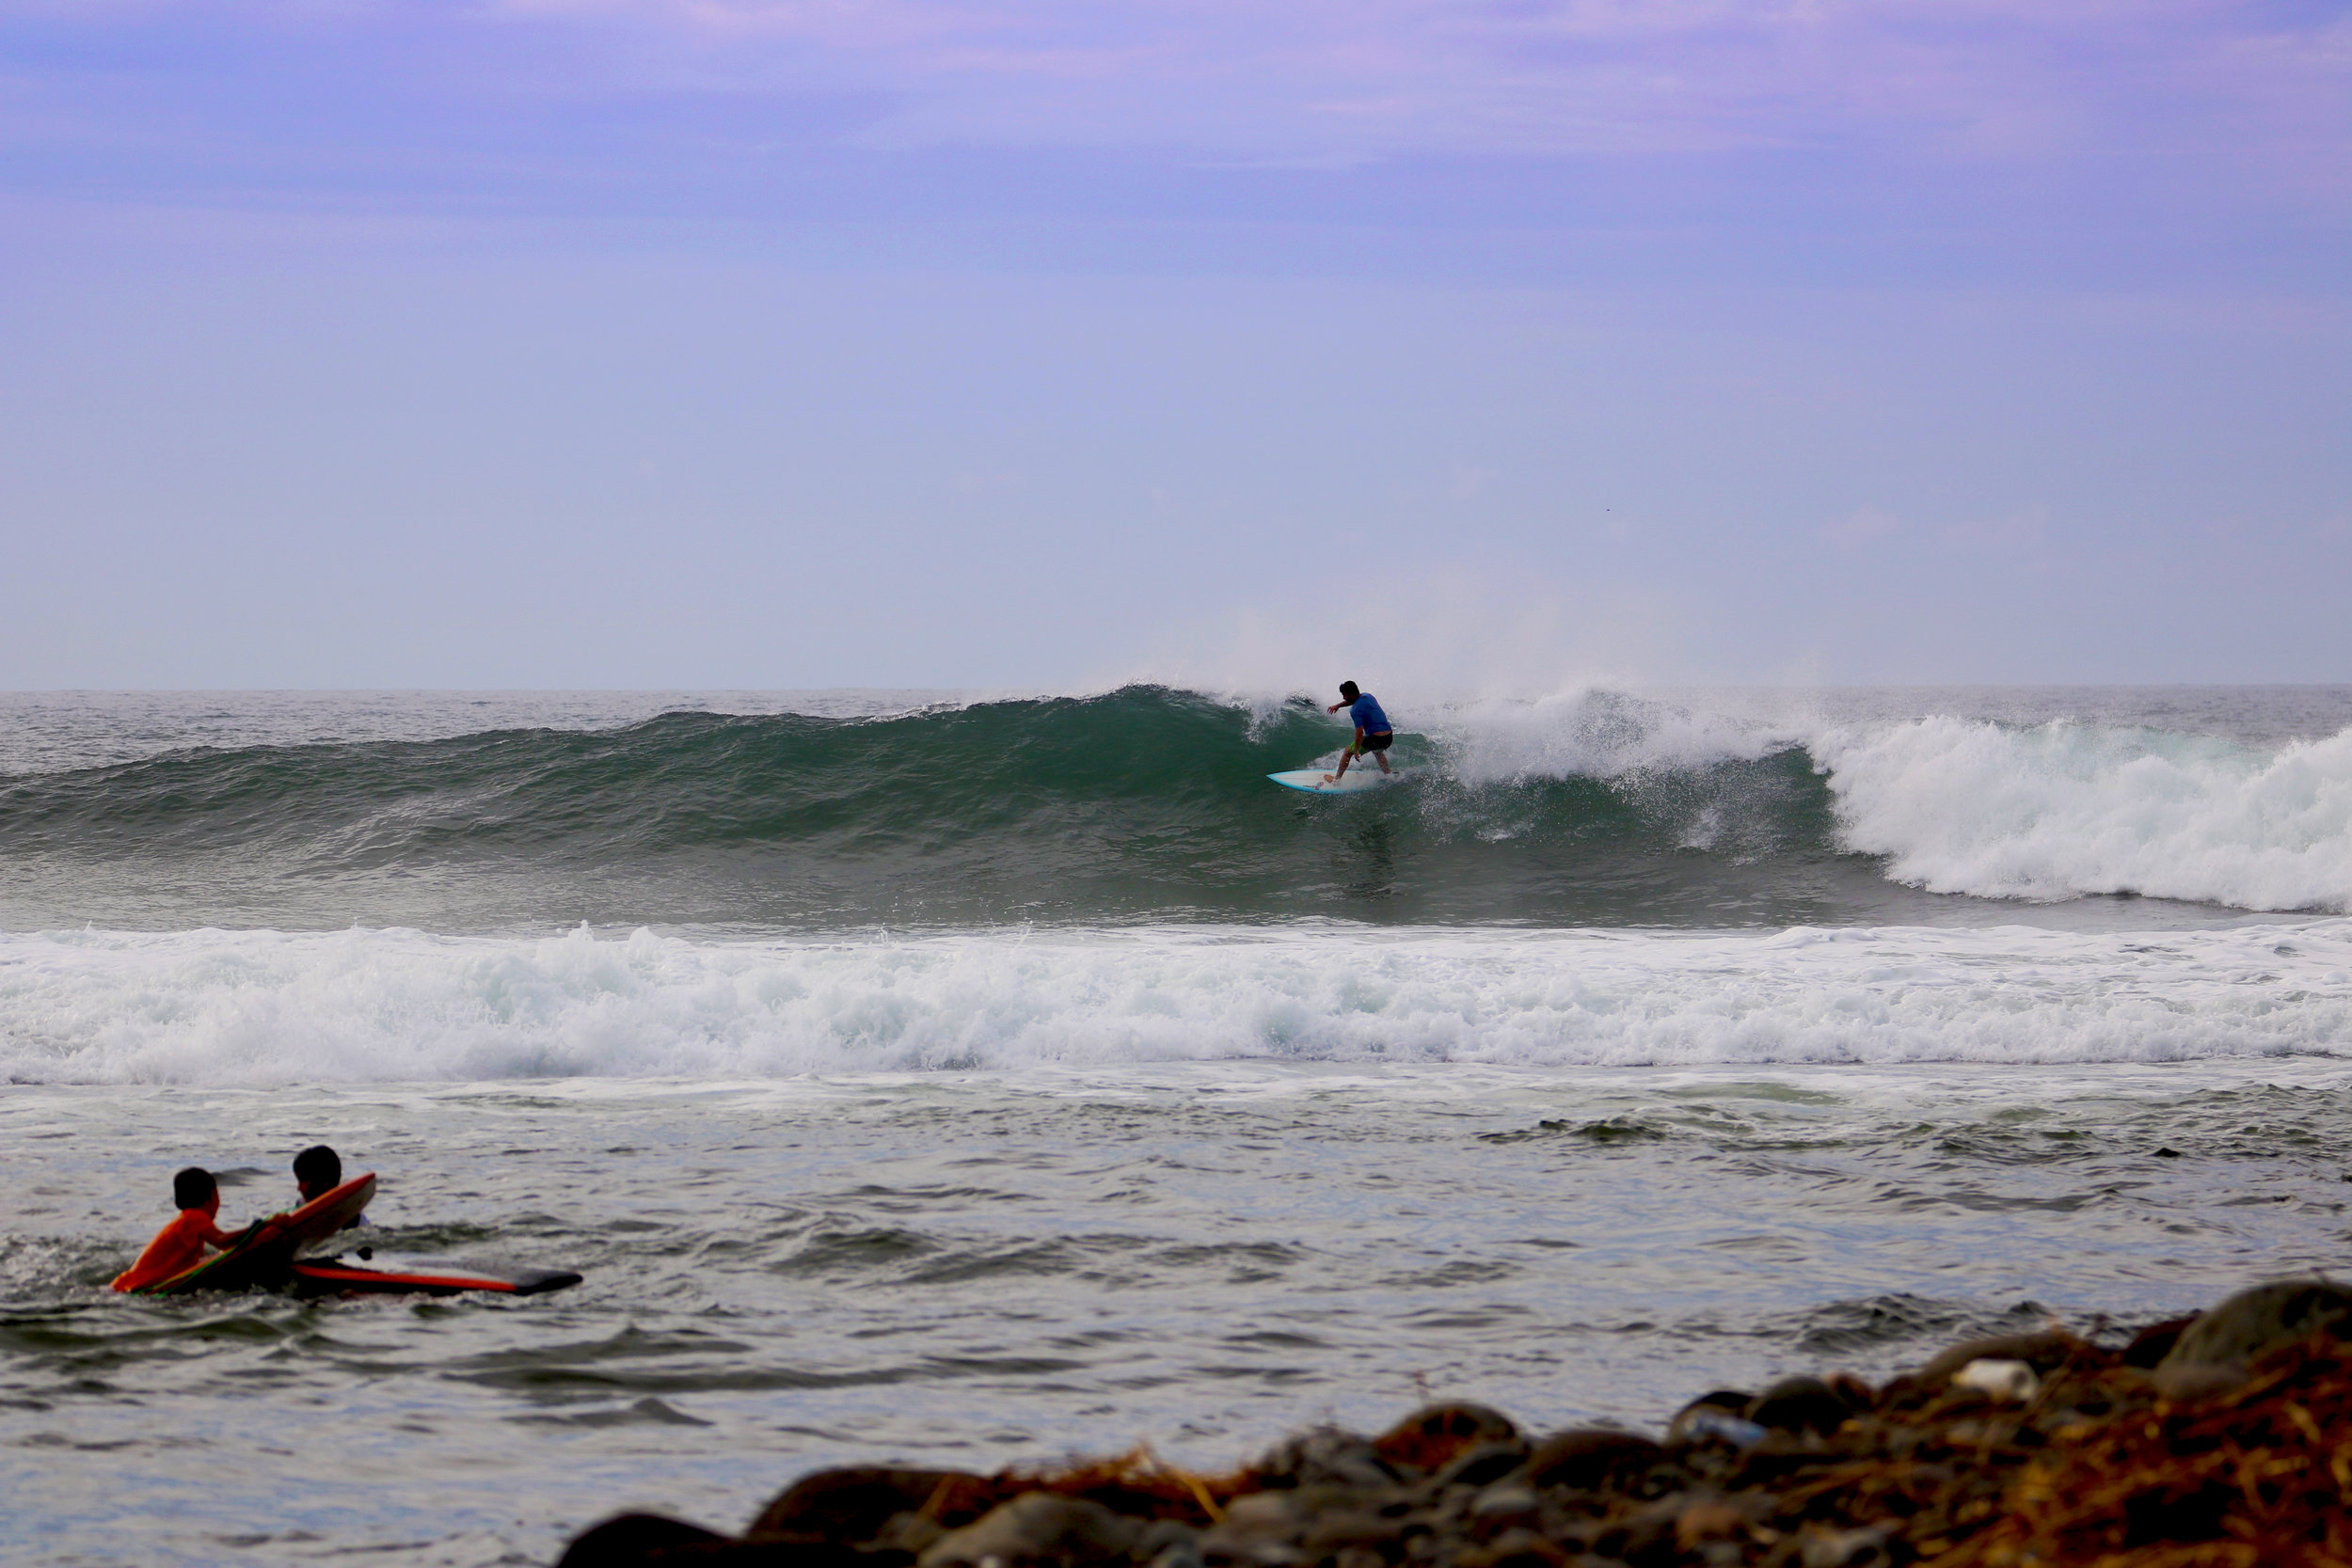 Sharing a few waves with the locals.